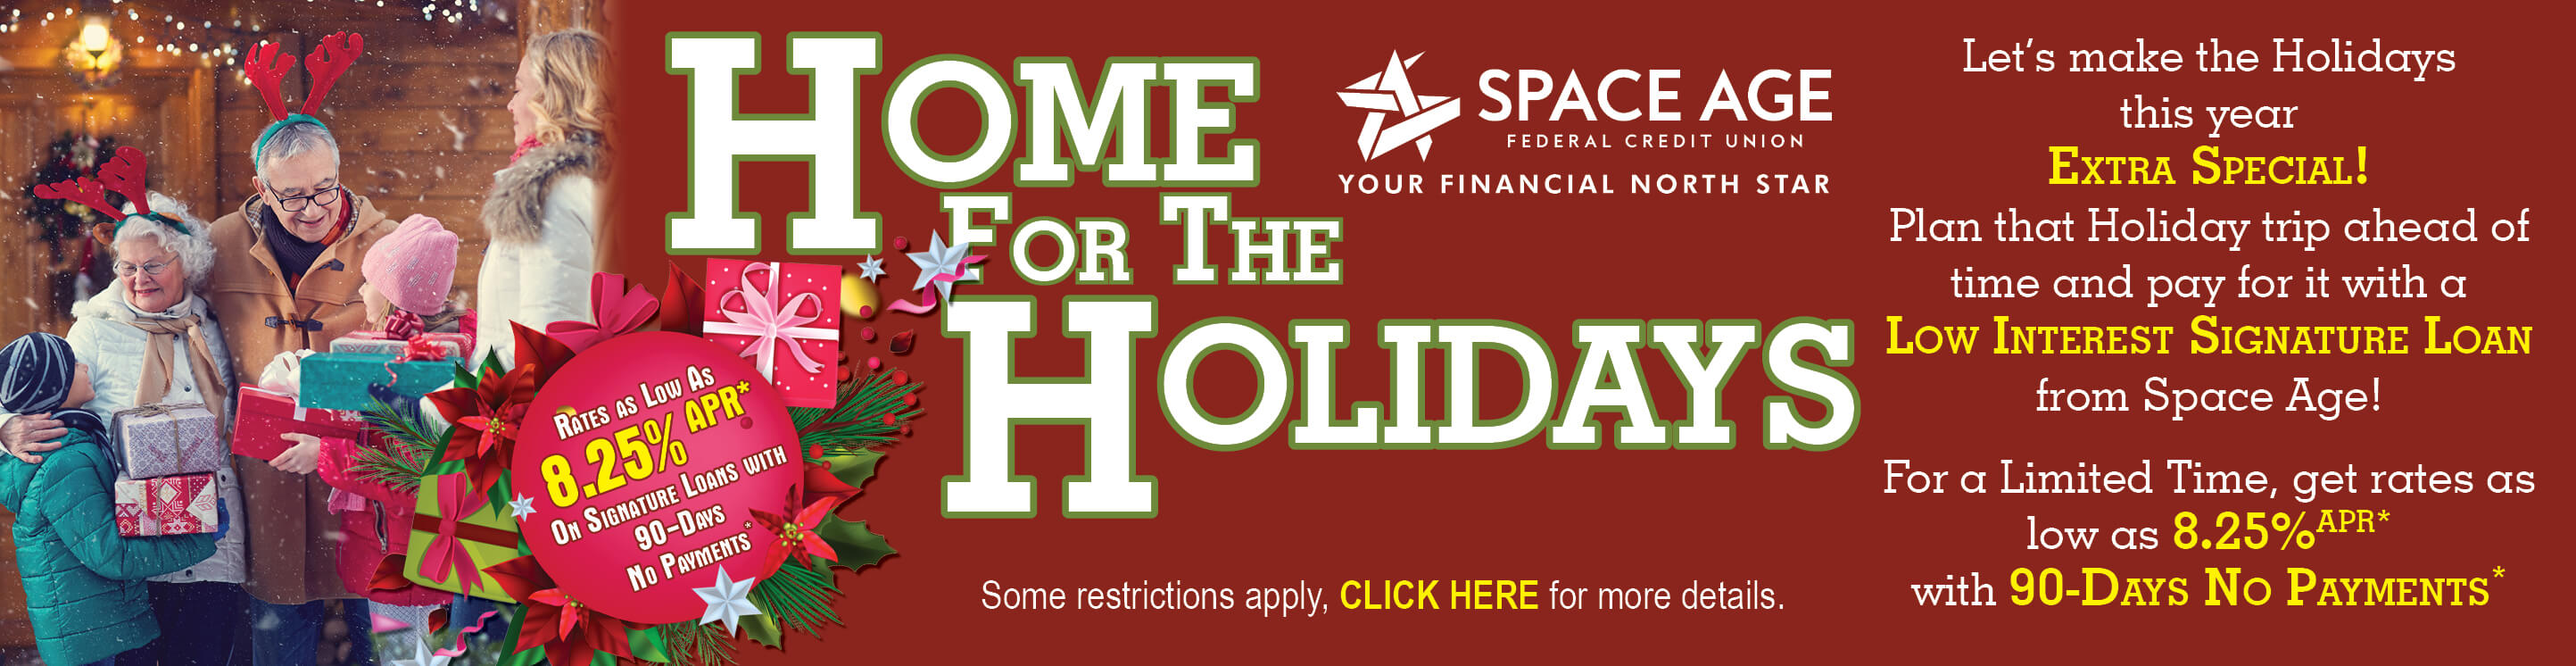 Banner shows grandparents greeting their family in Holiday attire. Text reads, Home for the Holidays, Plan that Holiday Trip ahead of time with a Low Interests Signature Loan.